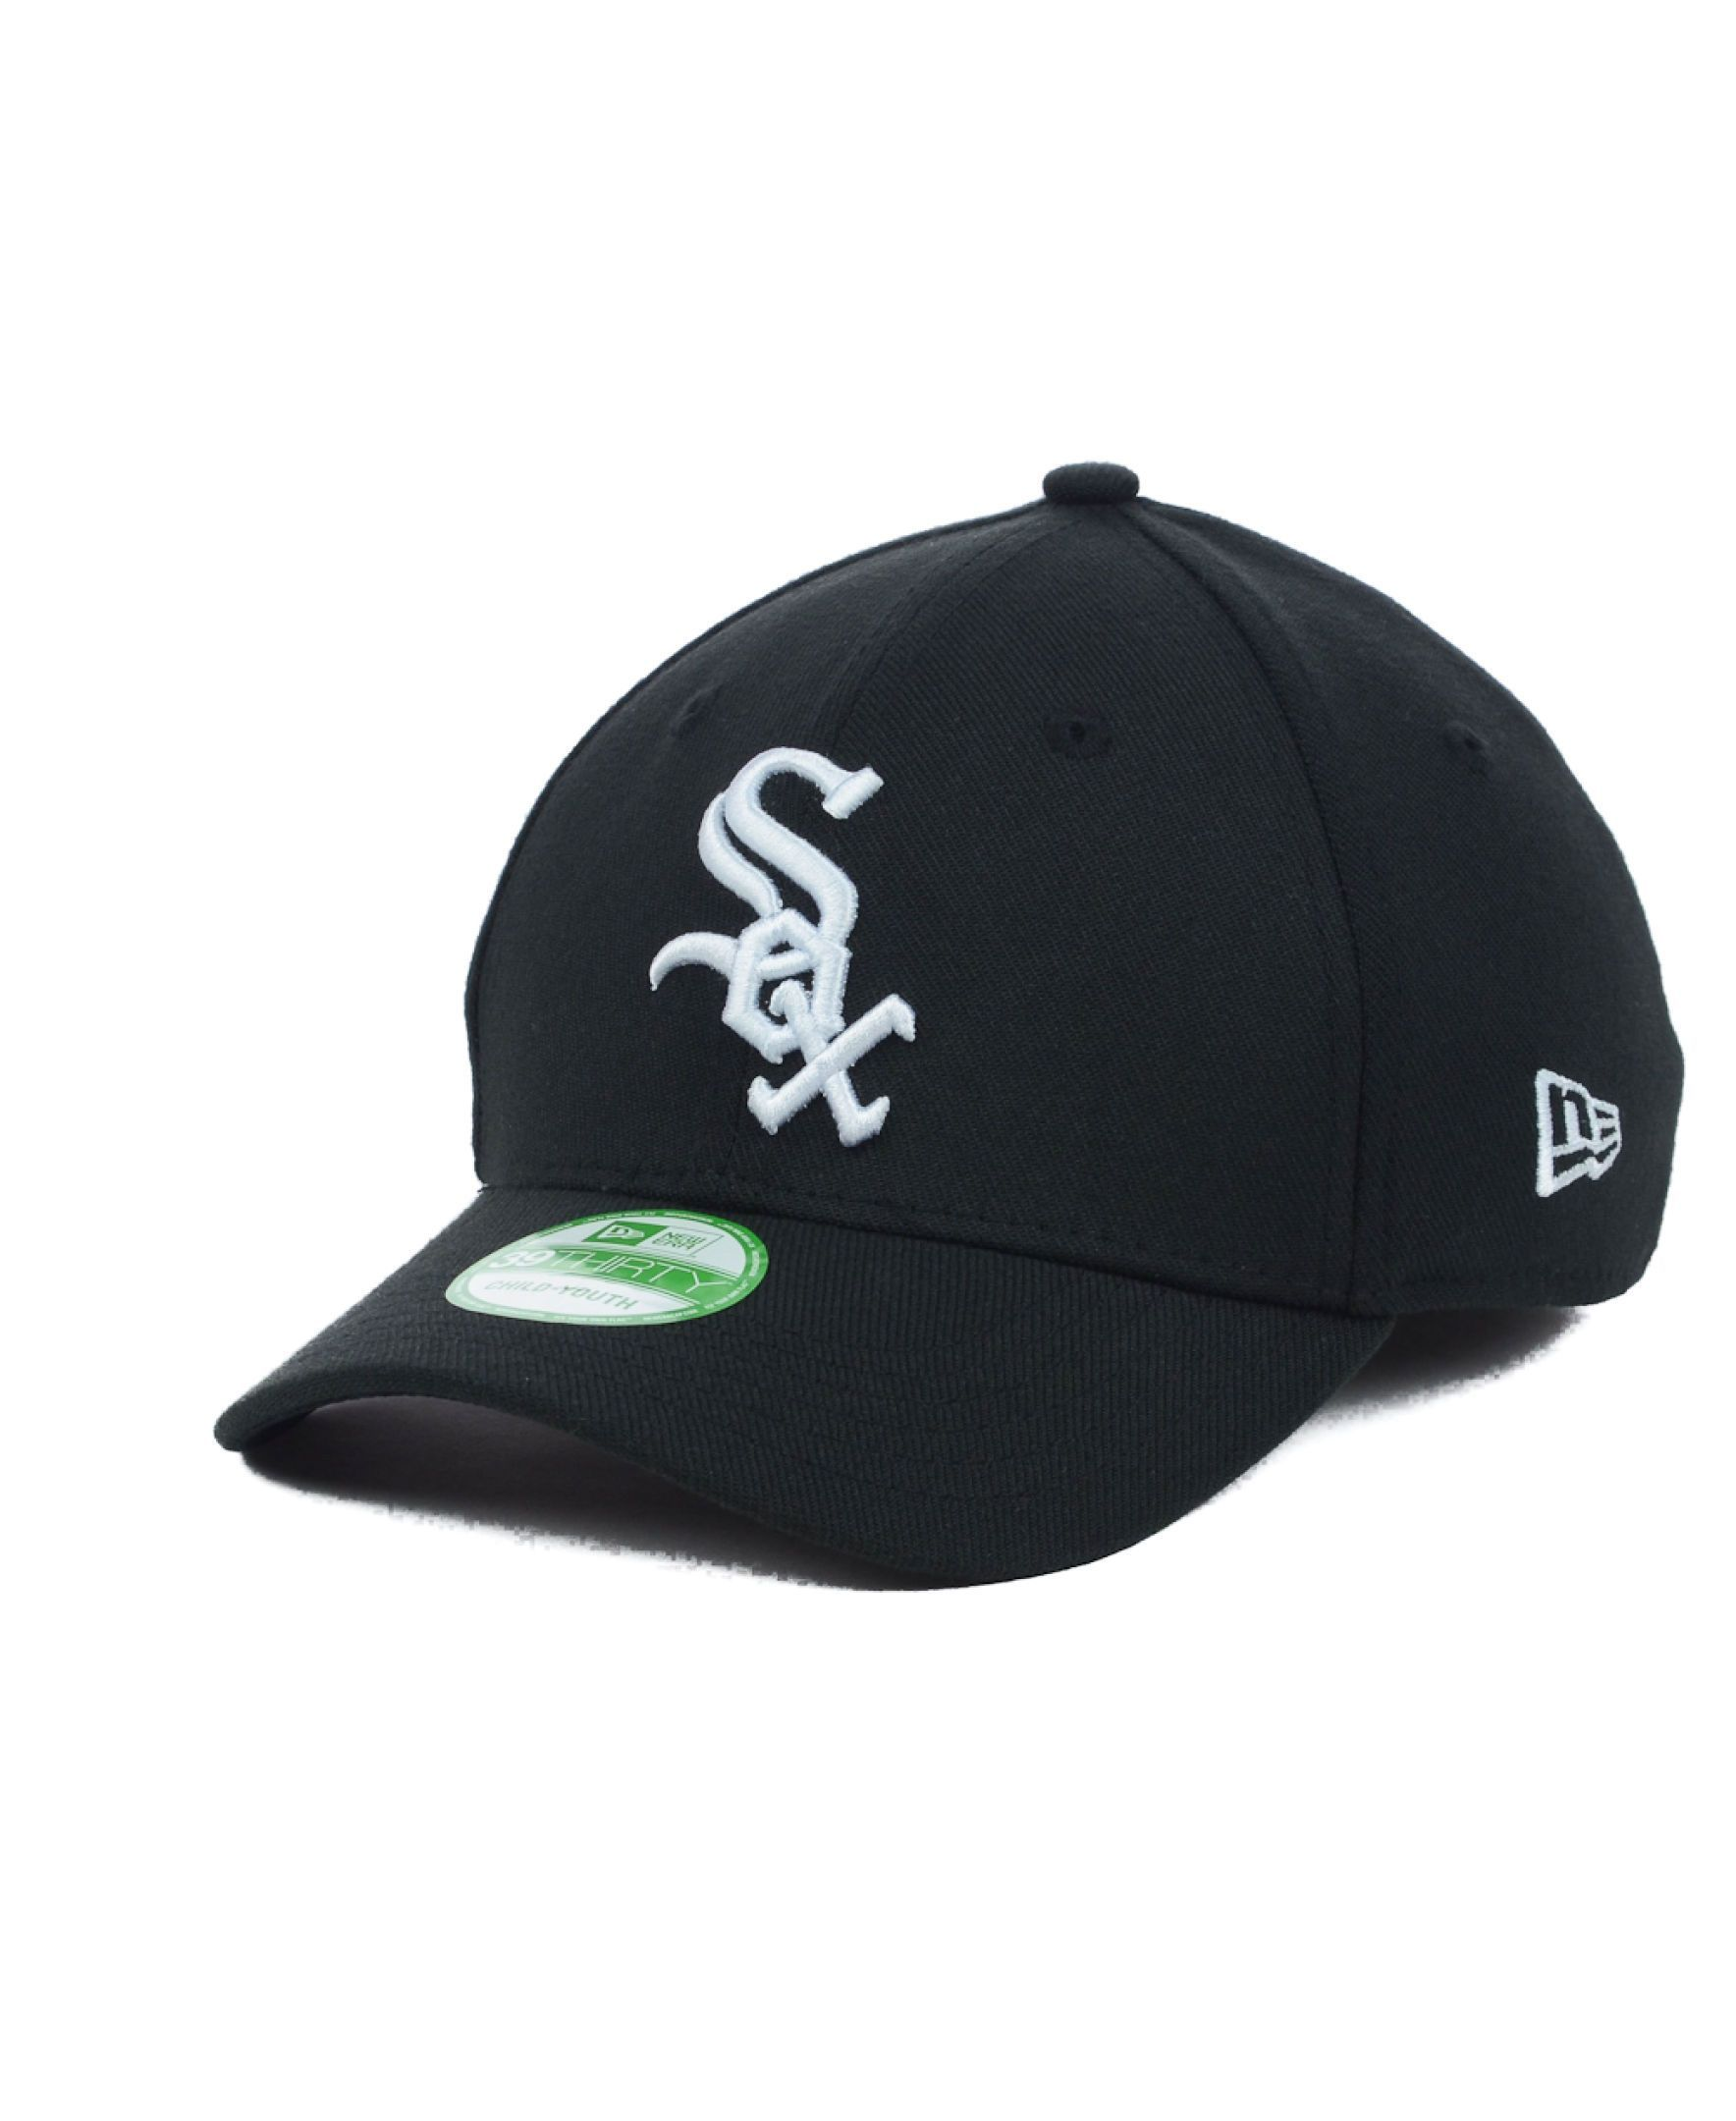 New Era Chicago White Sox Team Classic 39THIRTY Kids  Cap or Toddlers  Cap dc2098d51459